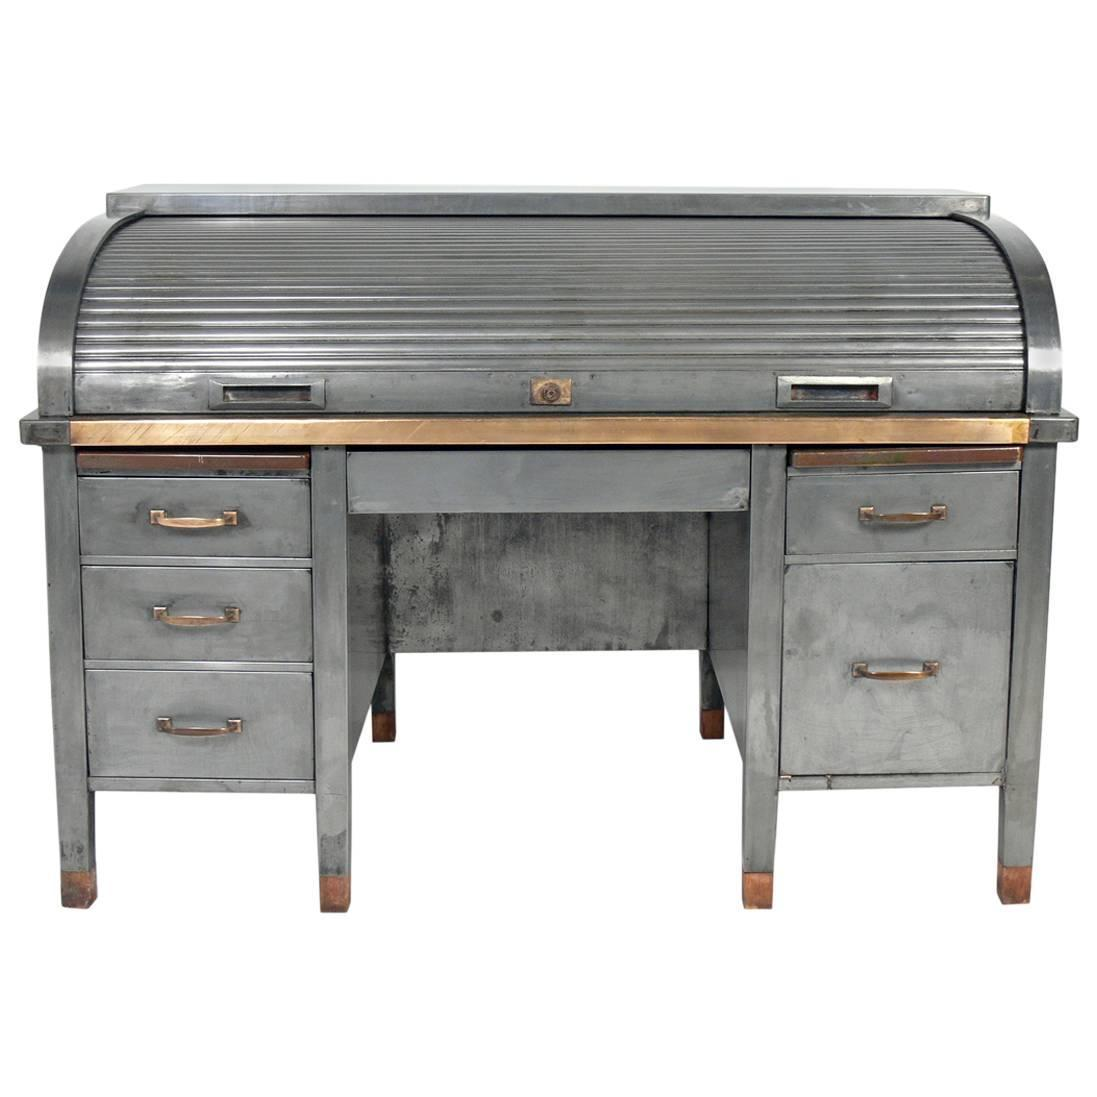 1930s Banker S Metal Roll Top Industrial Desk For Sale At